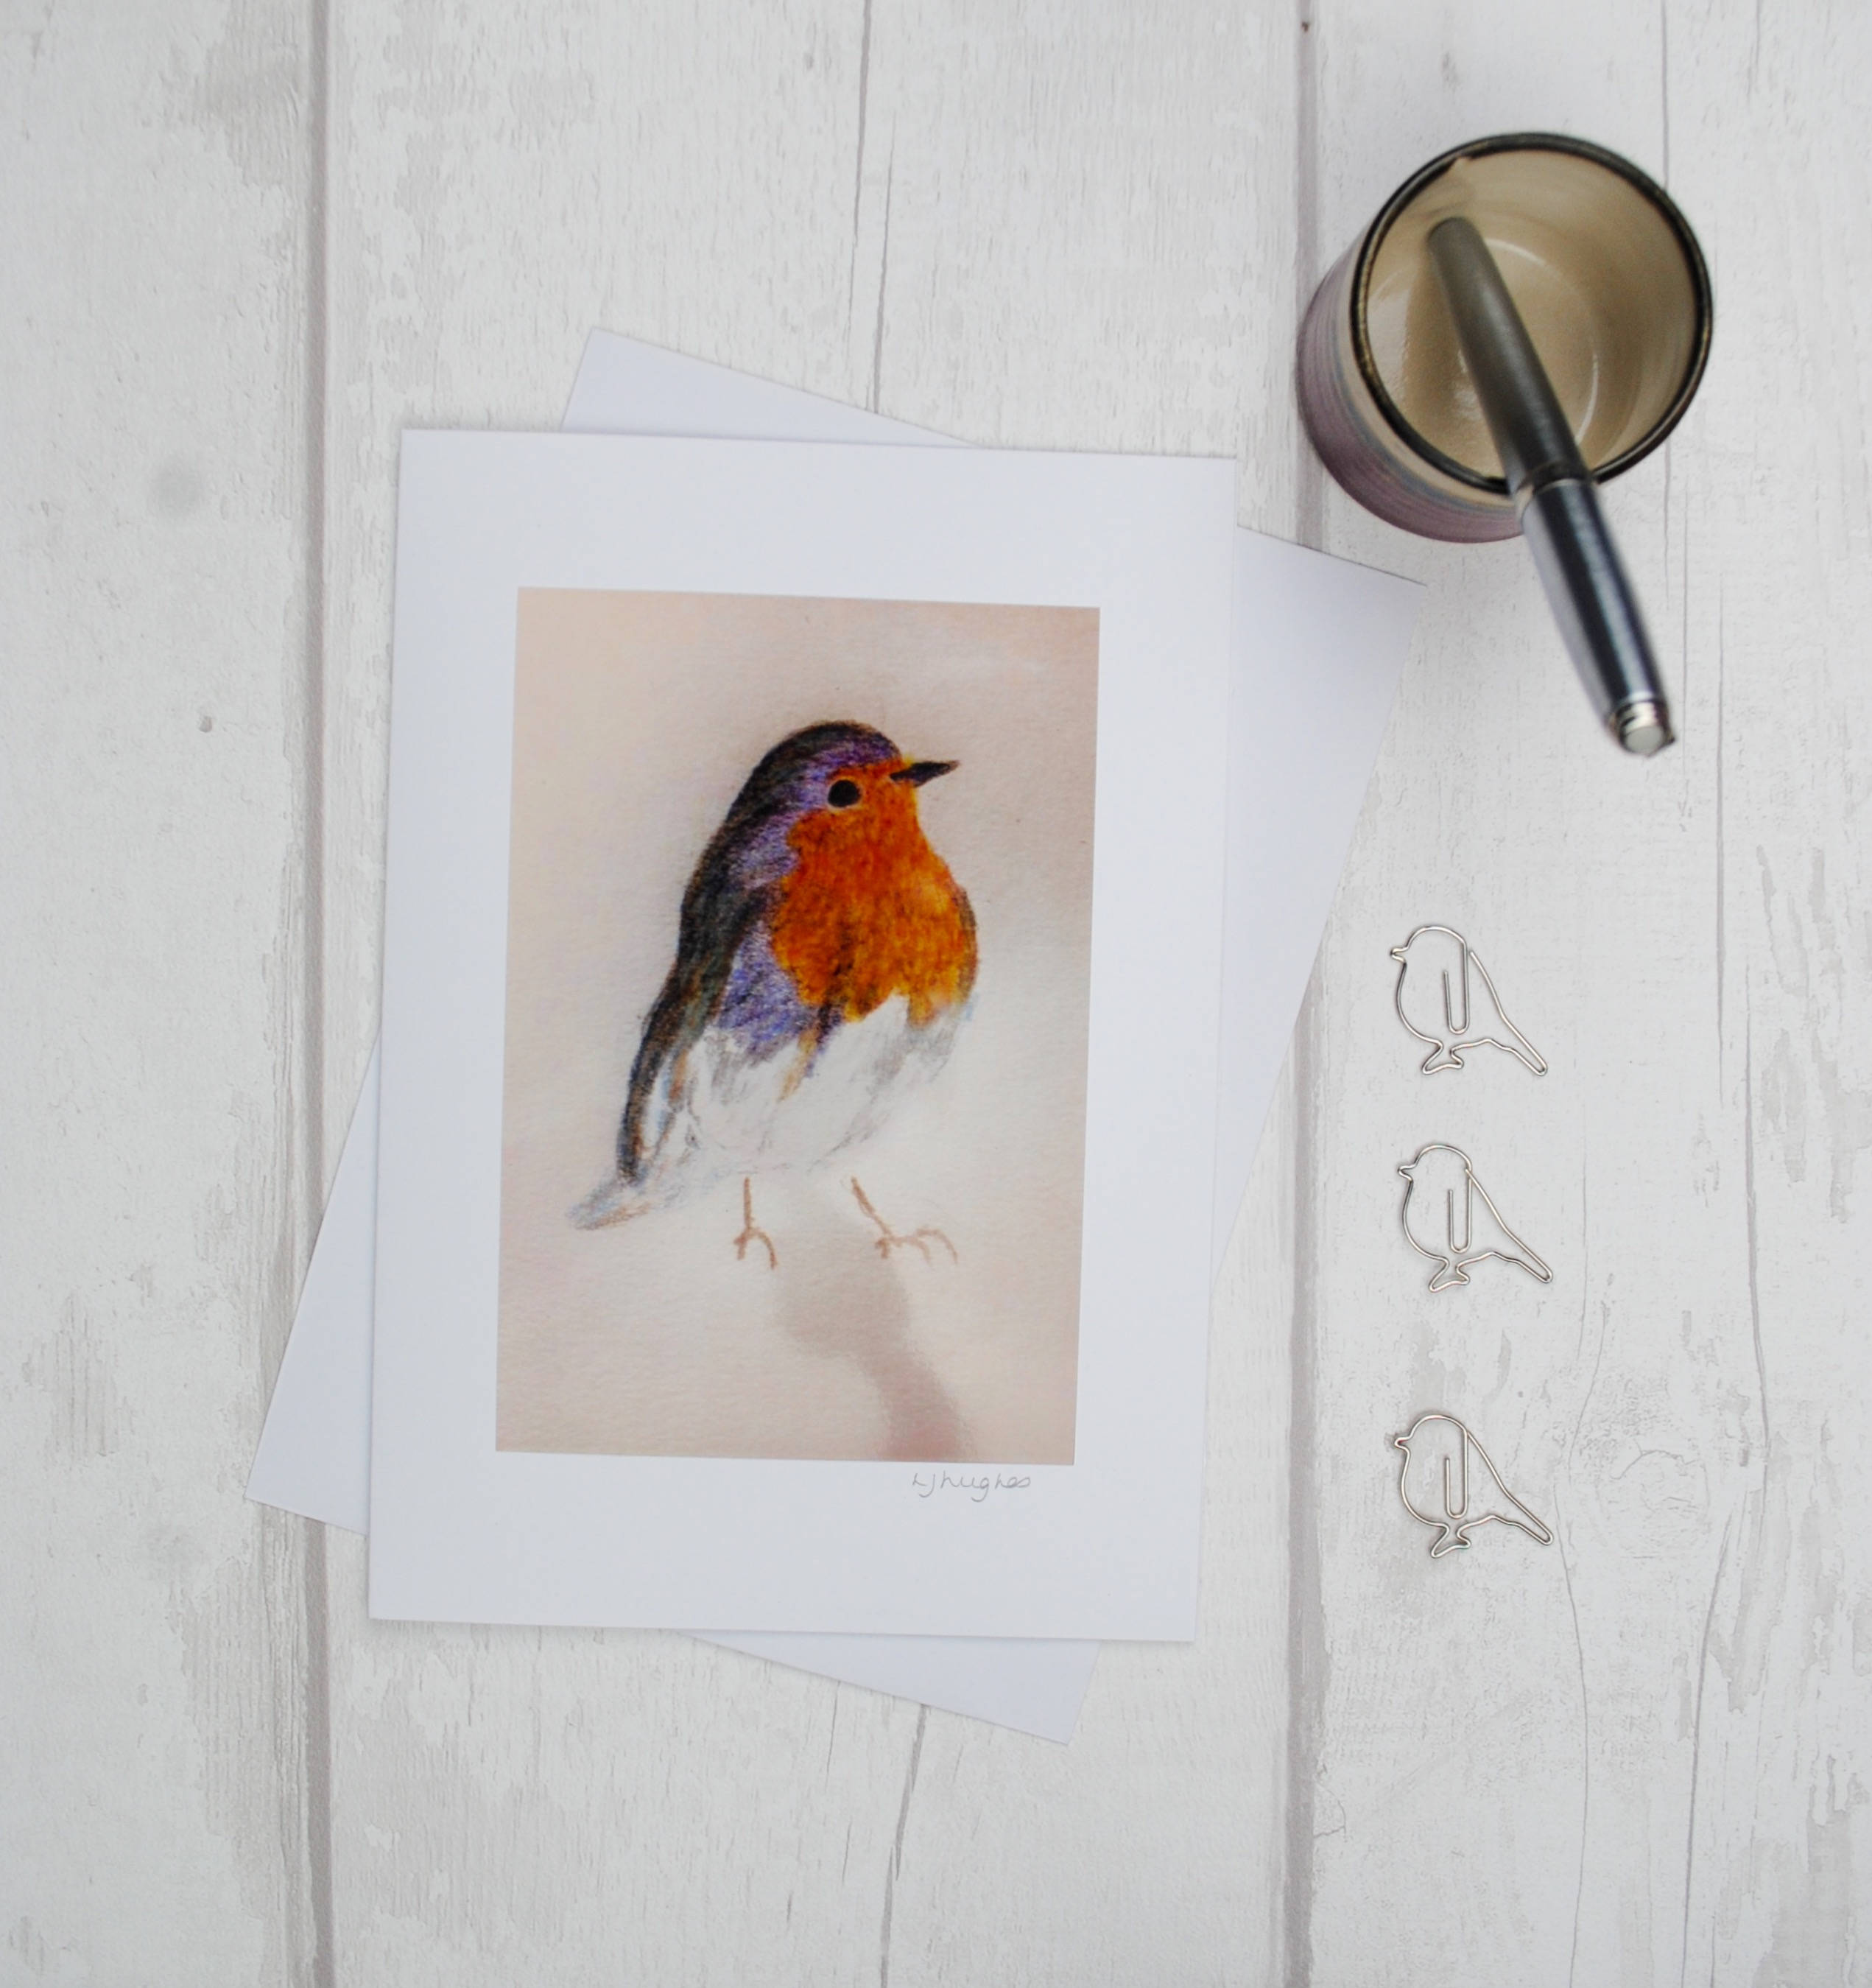 Drawn robin pencil Print Day Art Bird Modern